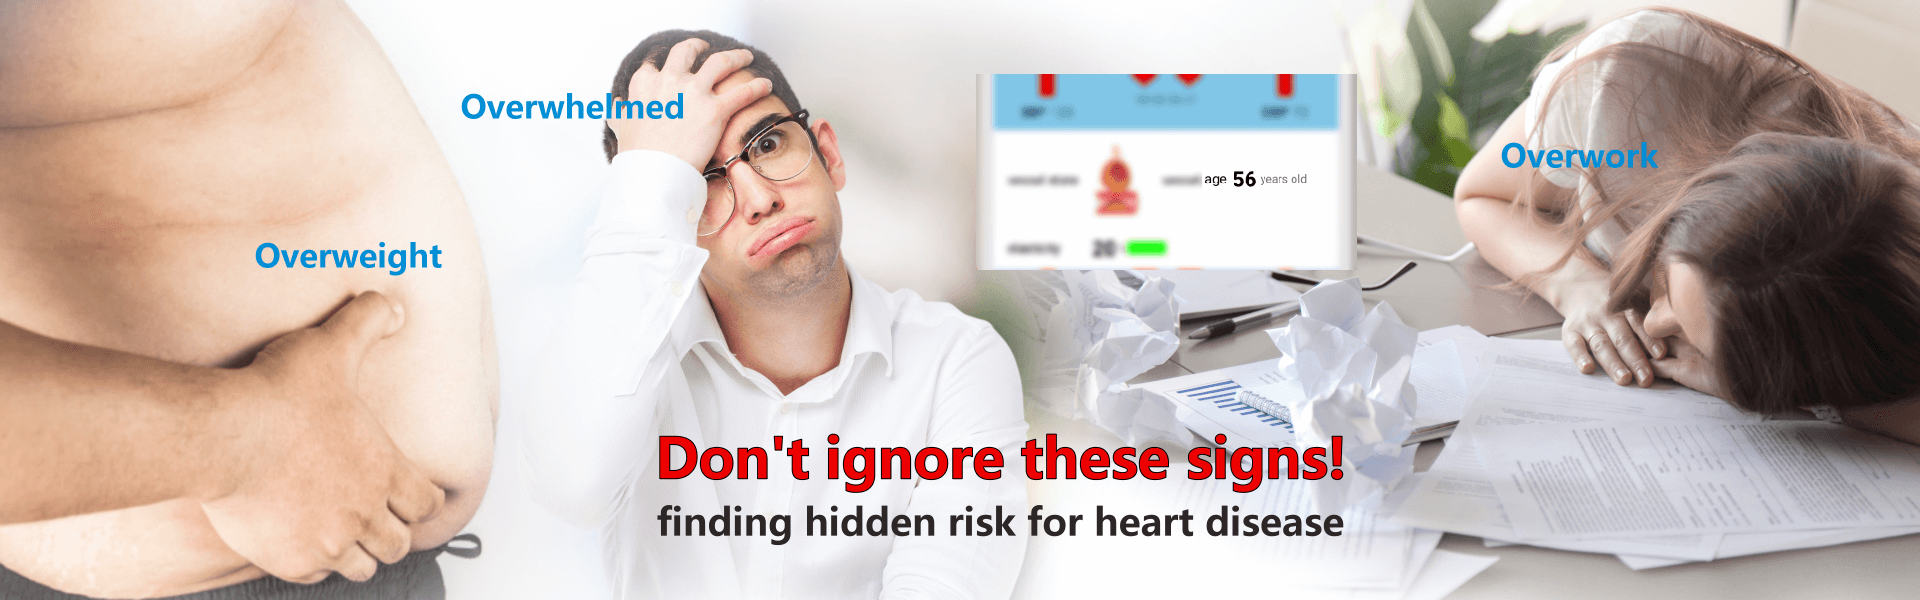 Don't ignore the signs like as overweight, overwhelmed & overwork. Finding hidden risk for heart disease. ArterialScan Bracelet by Newidea Co., Ltd.